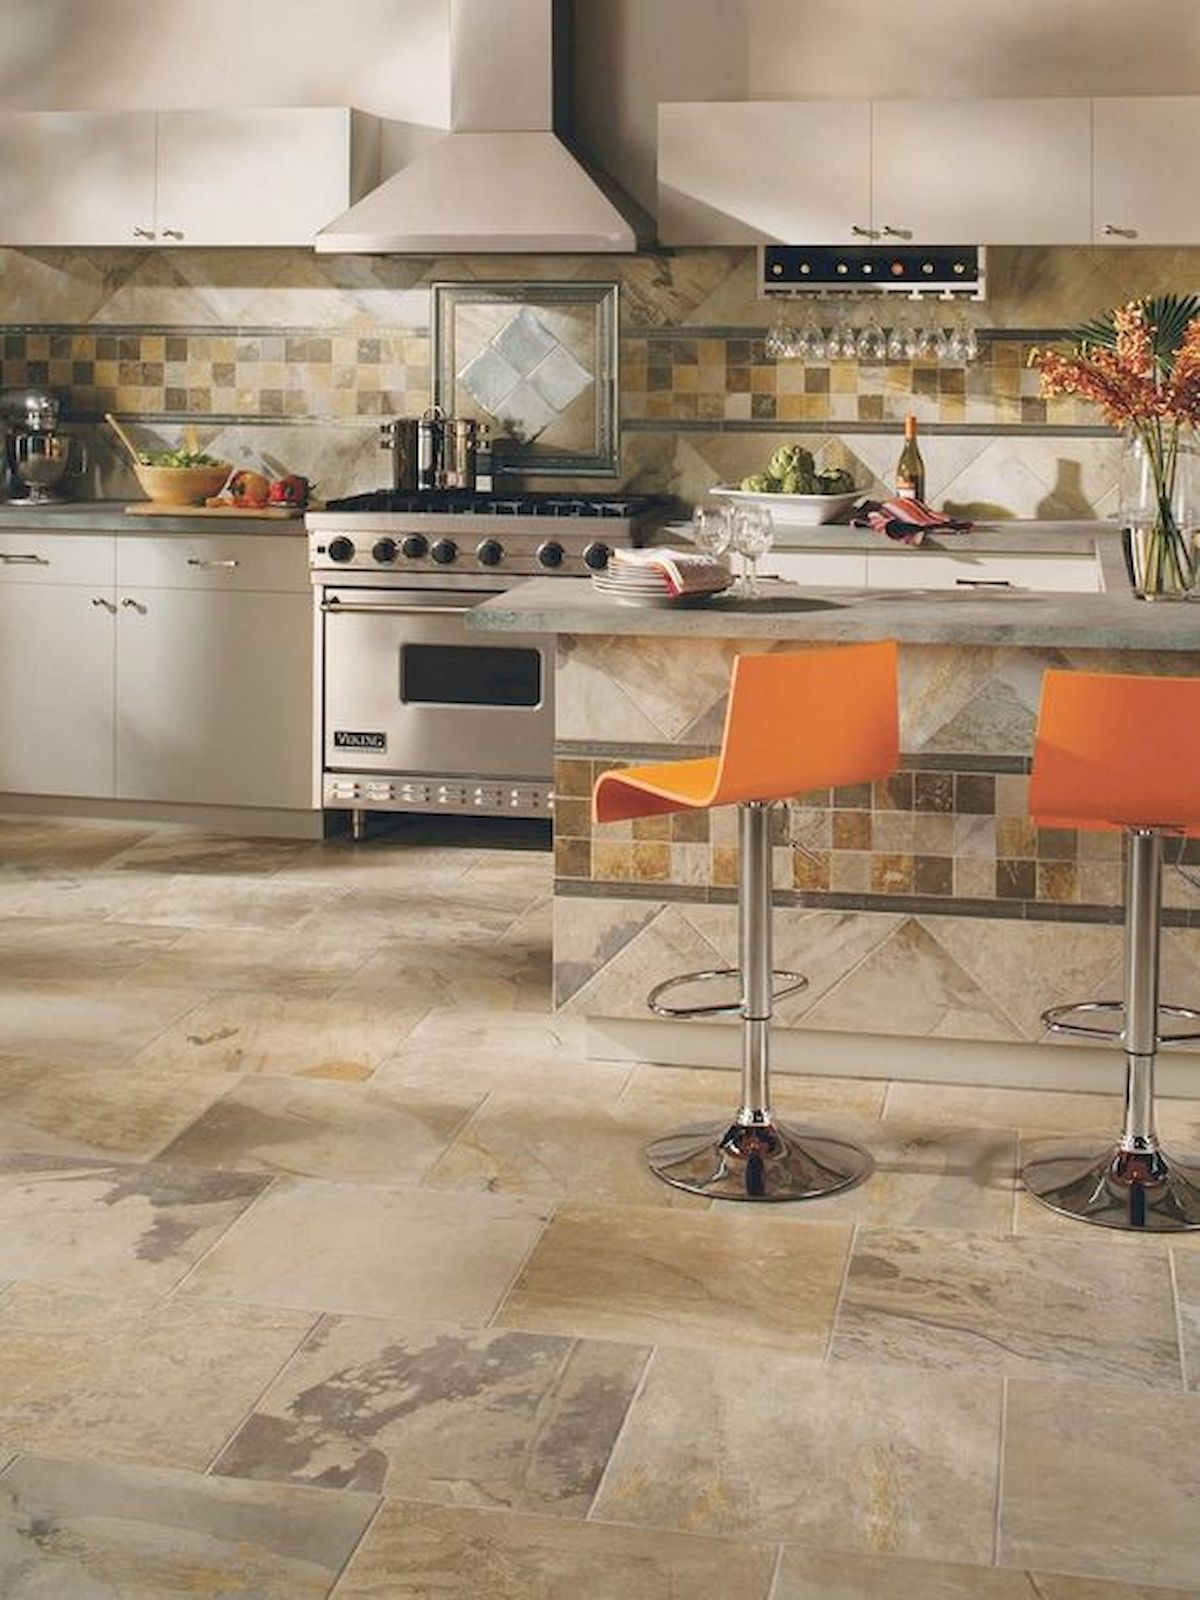 30 Awesome Kitchen Floor Design Ideas With Concrete Floor Ideas Types Of Kitchen Flooring Best Flooring For Kitchen Kitchen Floor Tile